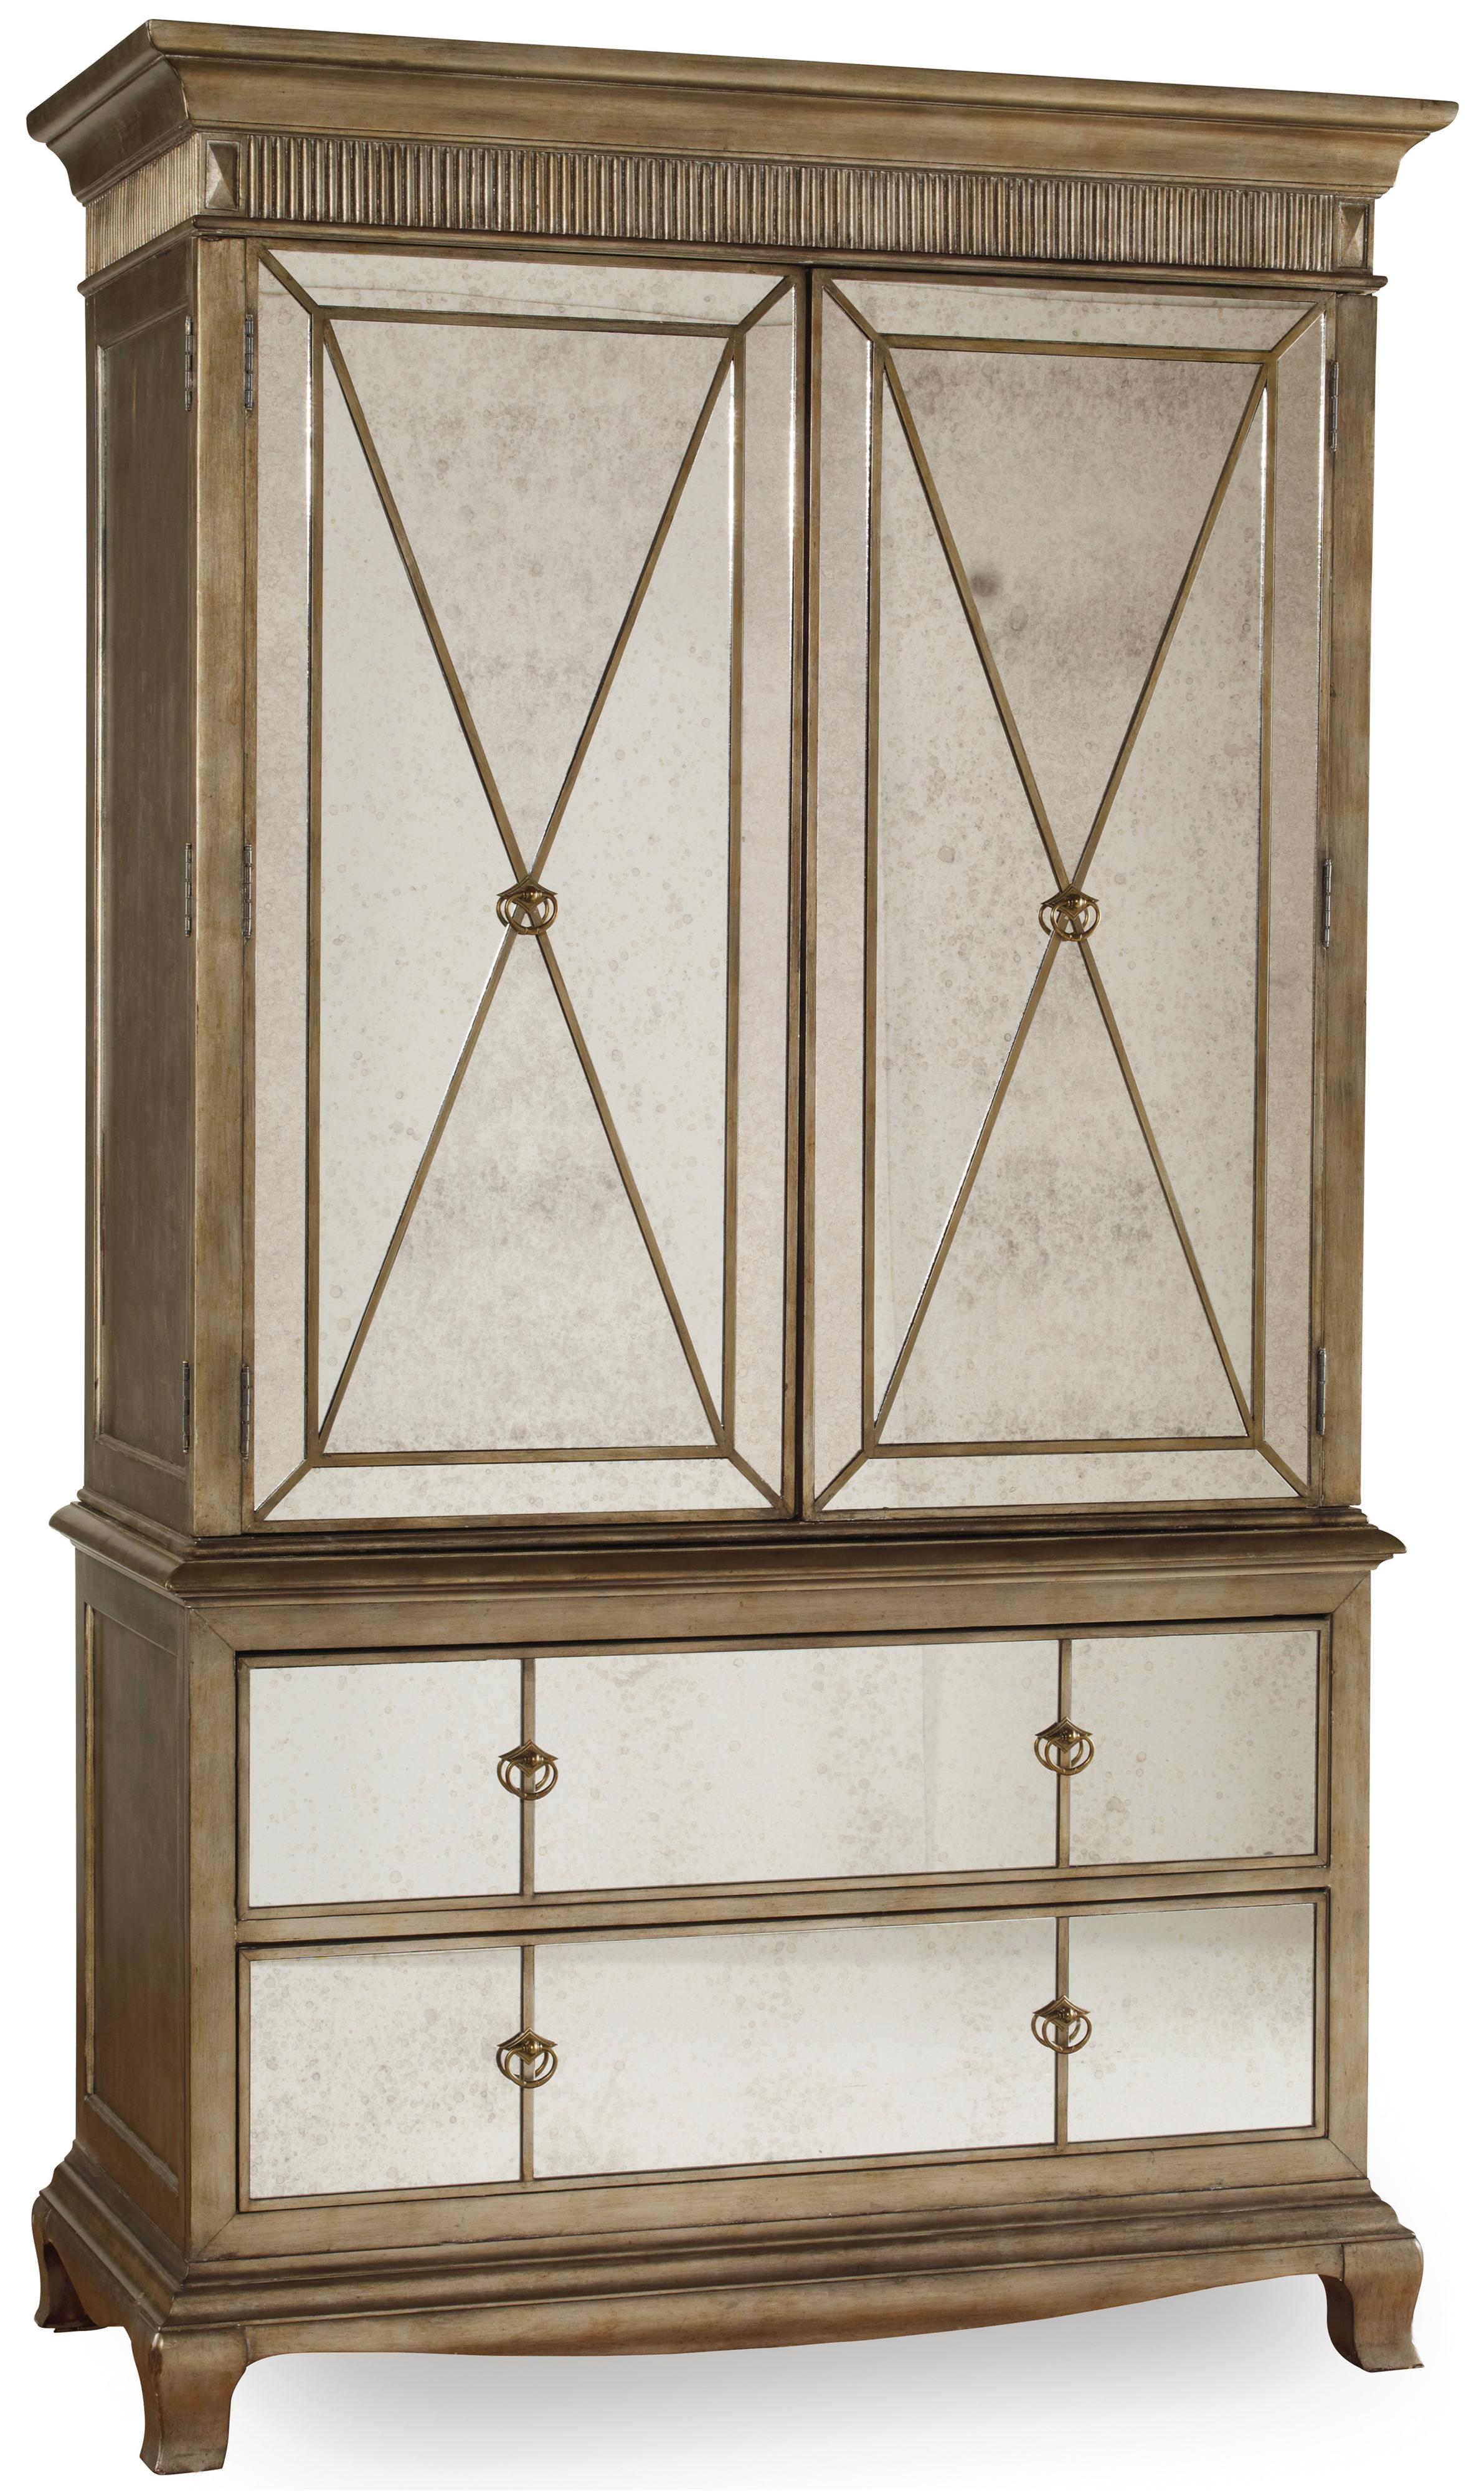 Hooker Furniture Sanctuary Armoire - Item Number: 3016-90013